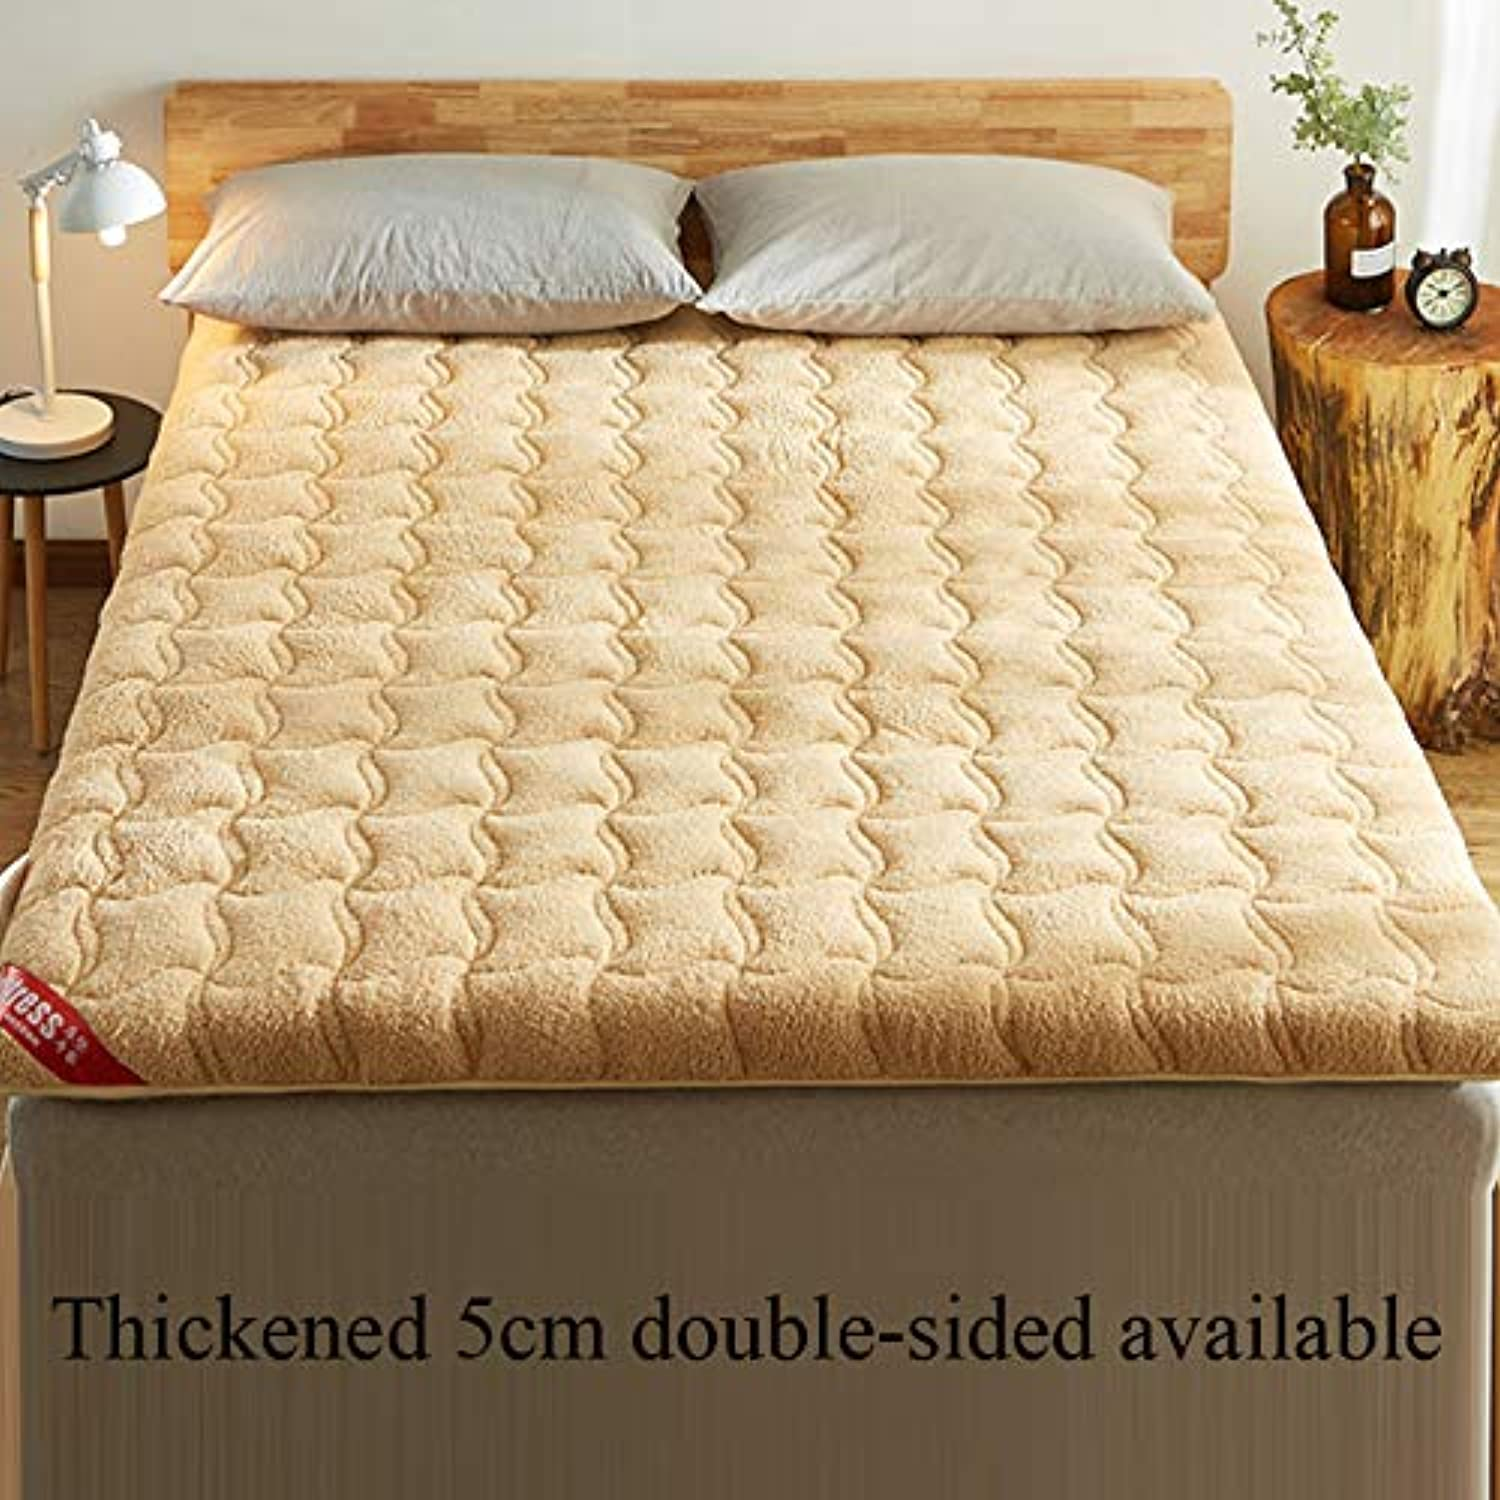 Mattress,Thickening Tatami Mat Student Dormitory Single Double Lamb Cashmere Bed Mat Four Seasons Universal Elasticated Corner Straps-C 90x200cm(35x79inch)